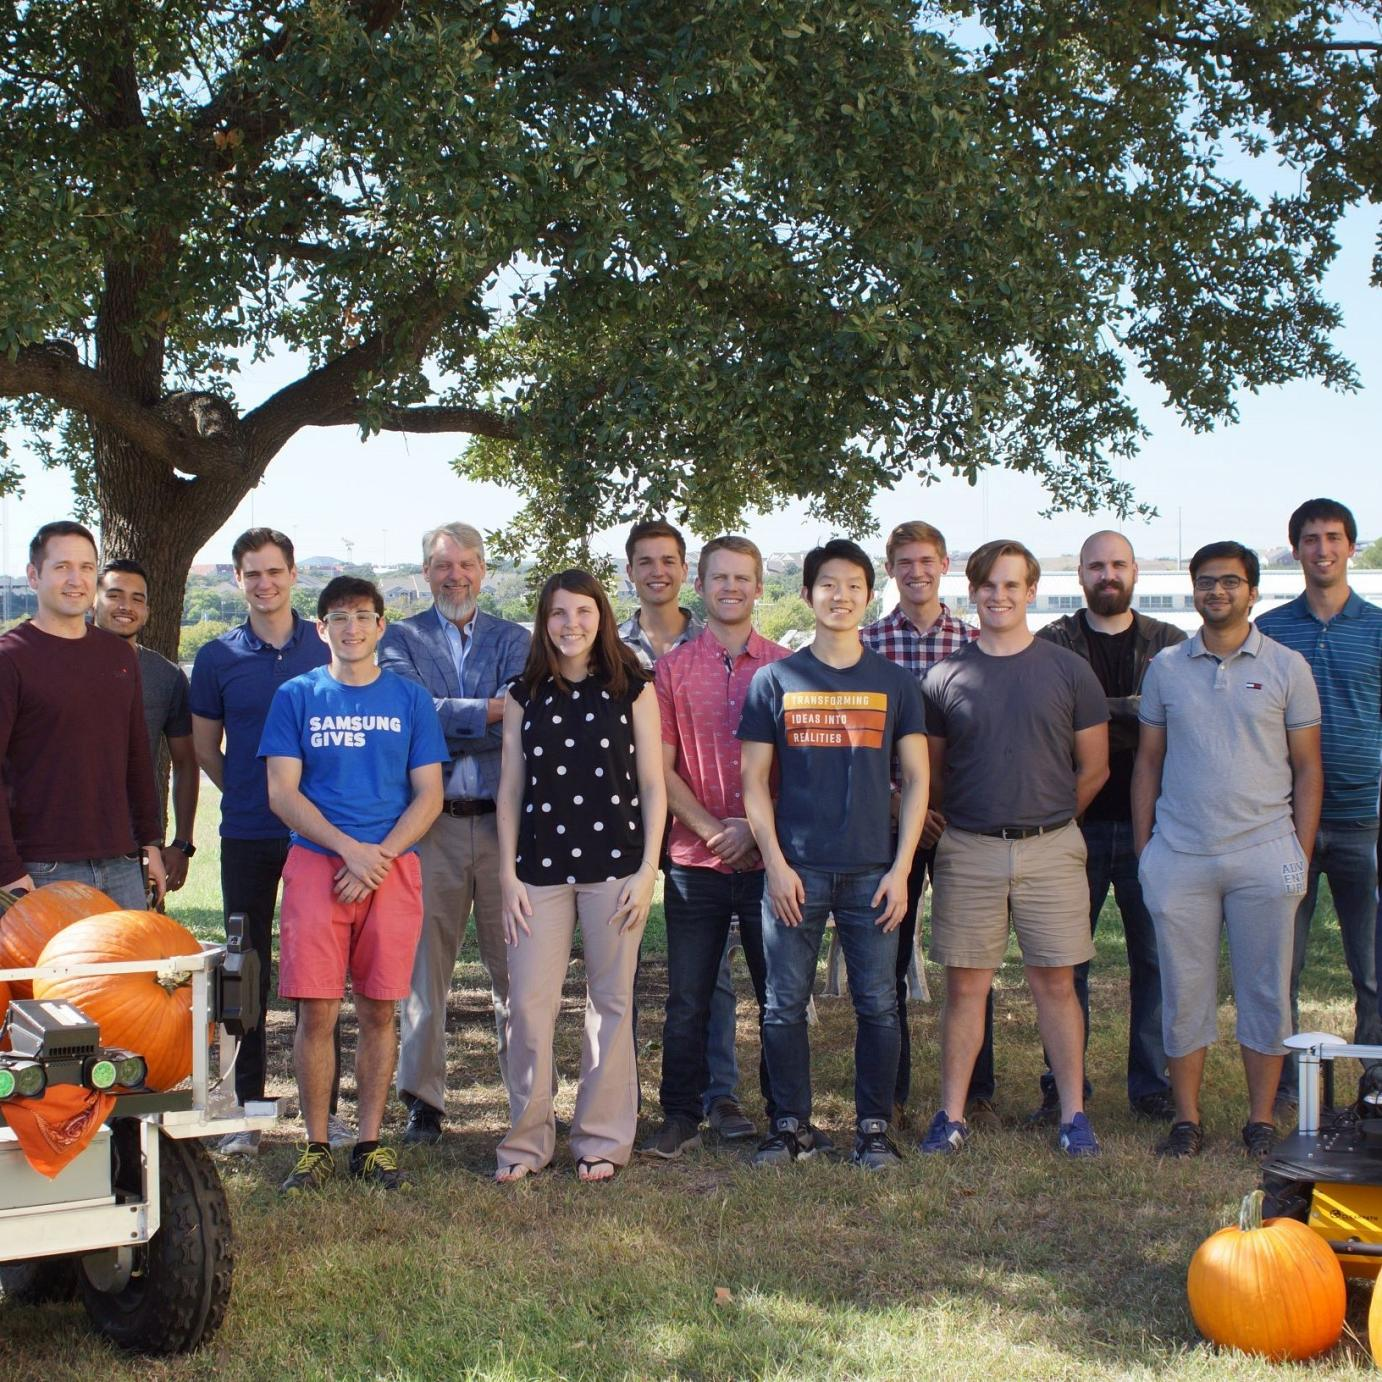 photo of the robotics group standing outside